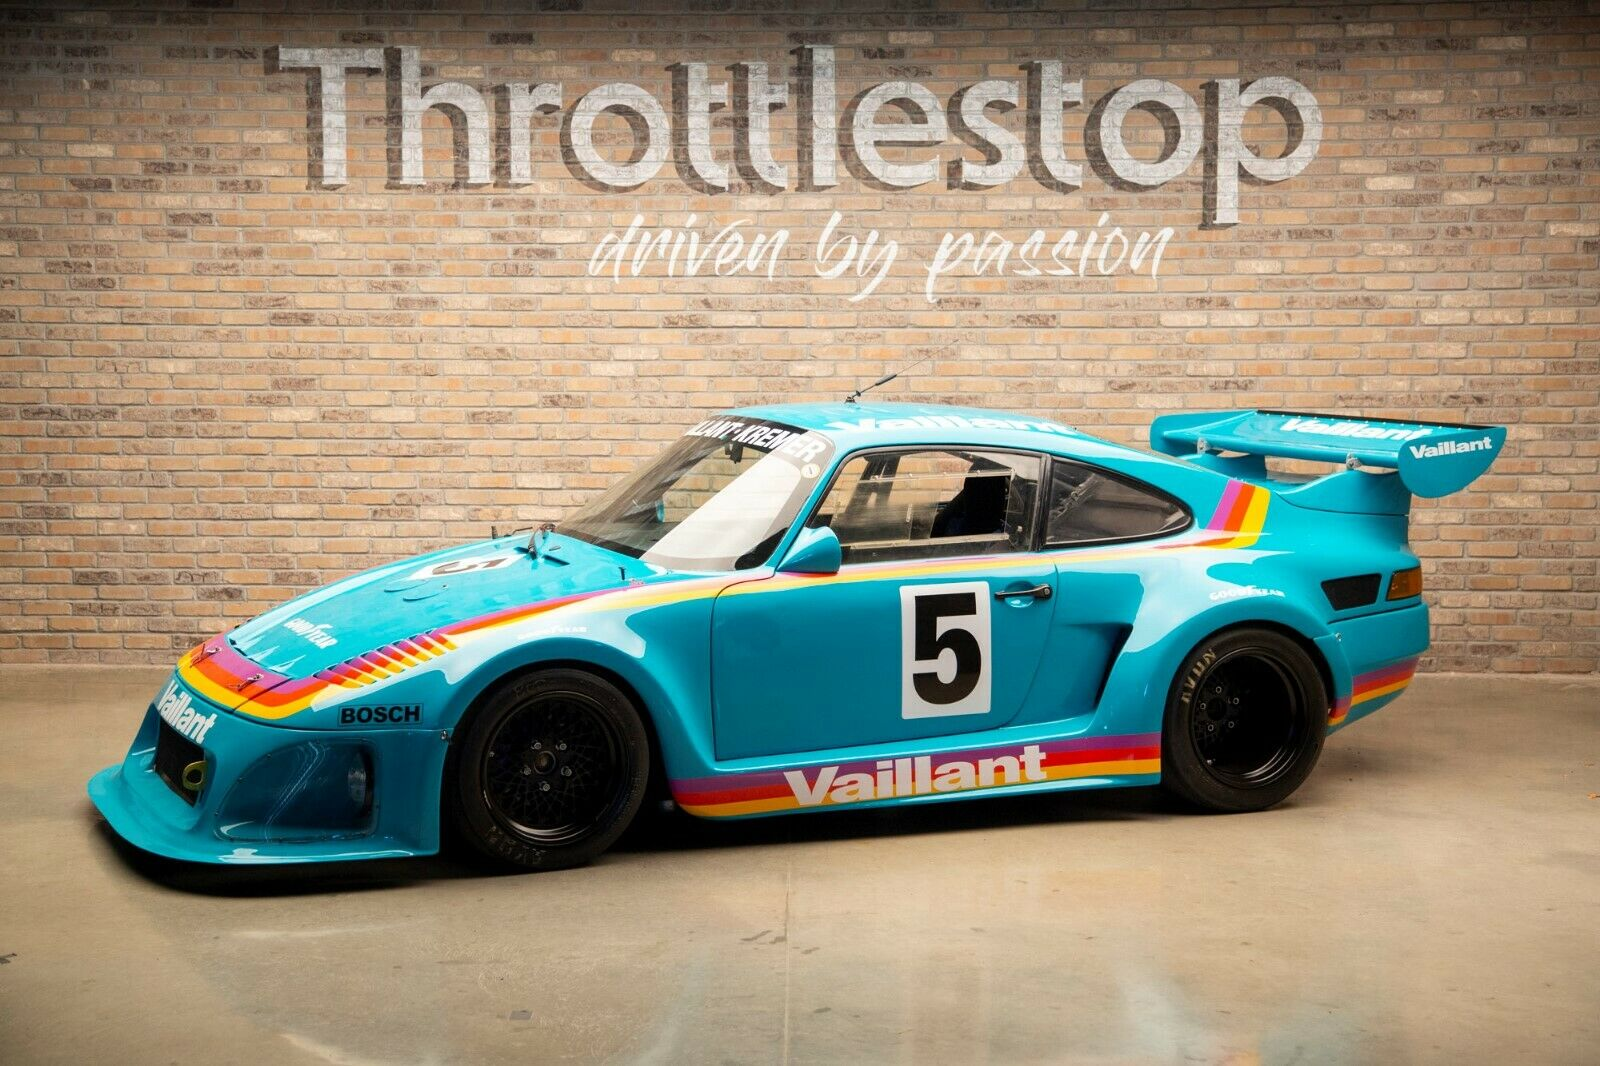 Beautiful Monster: This Specially Built 1976 Porsche 935 Has A Factory Built 806hp Twin Turbo Engine